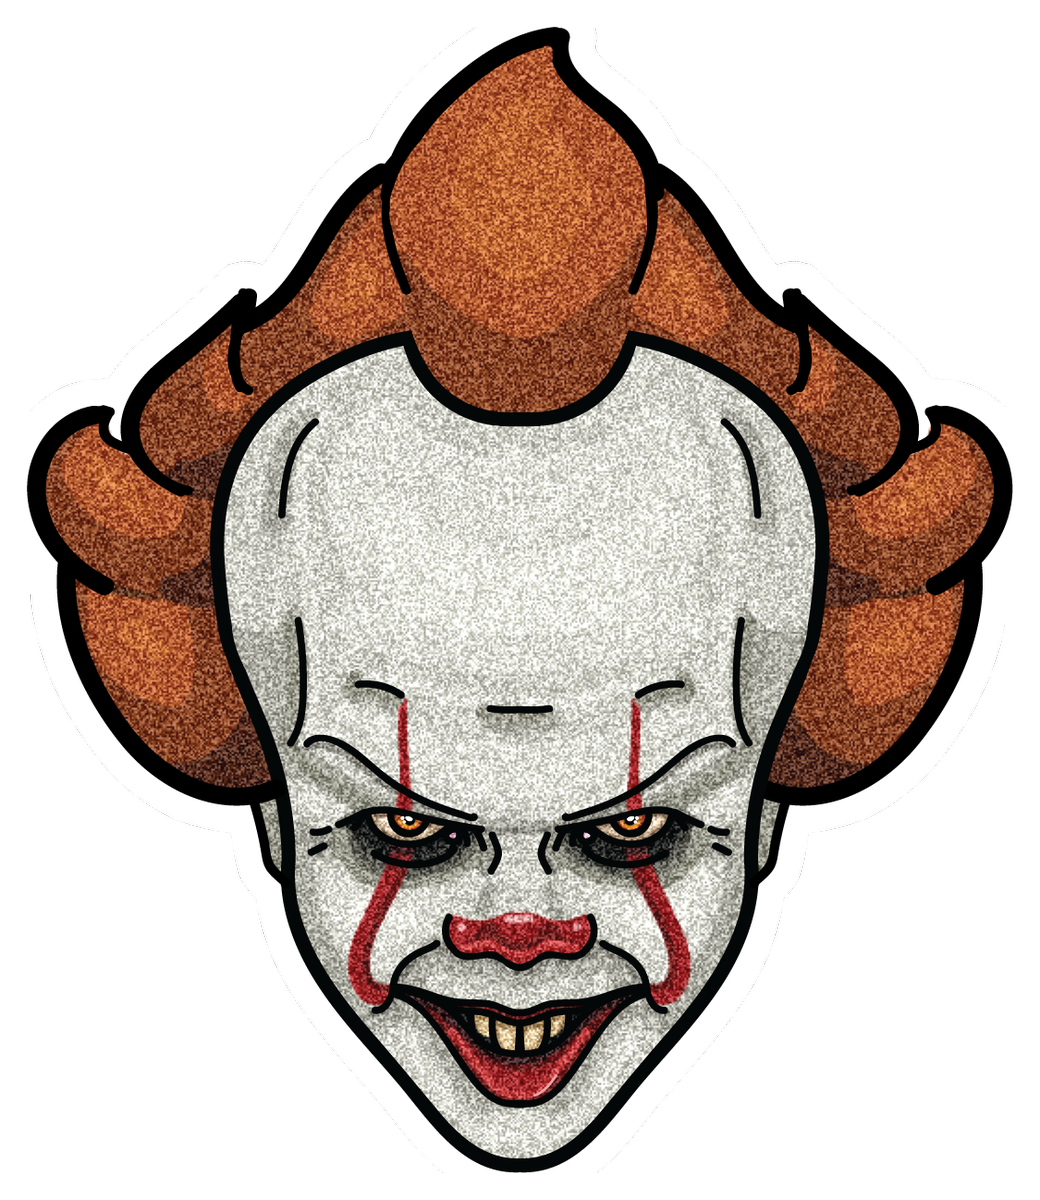 Clown clipart pennywise dancing clown. Wukong designs wukongdesigns twitter